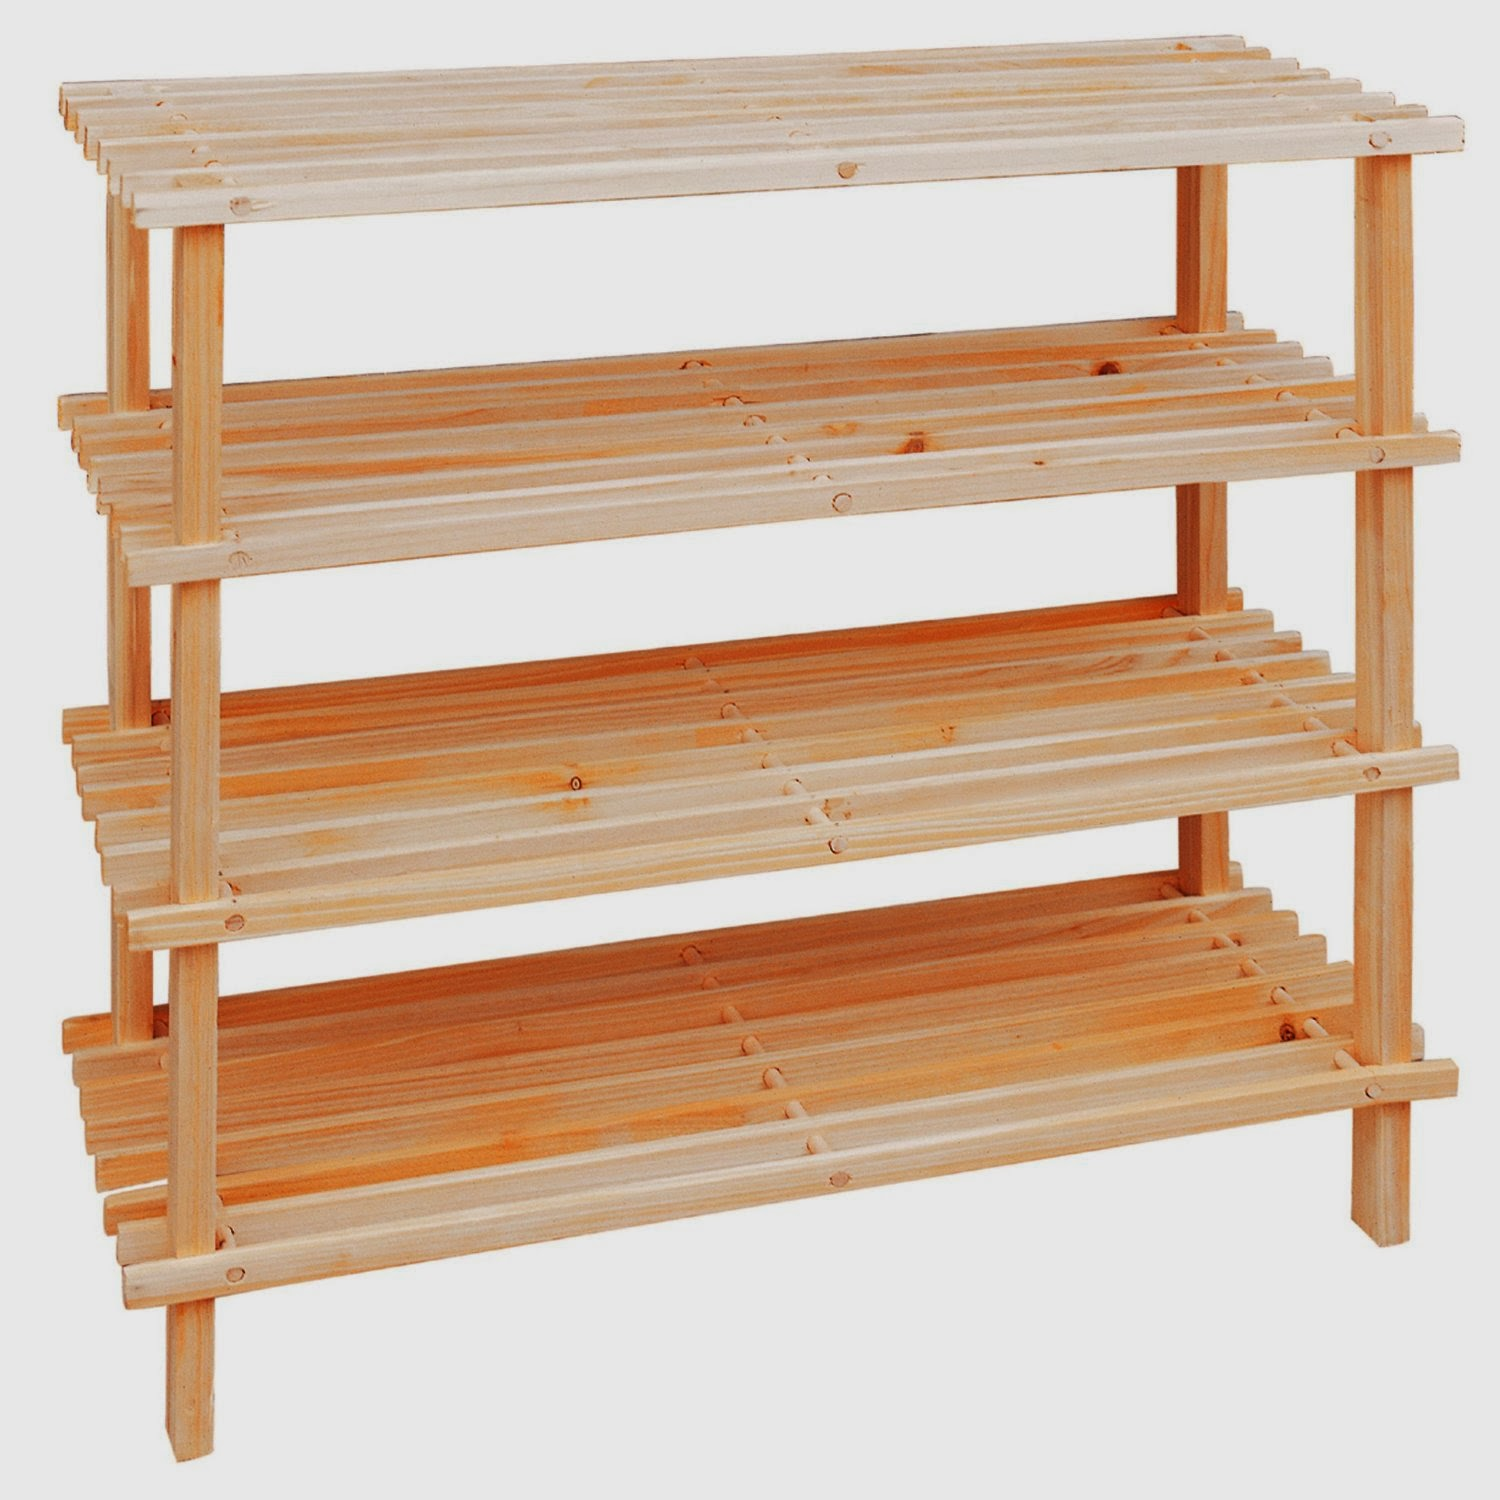 Wooden Baby Shoe Rack | MODERN INTERIOR